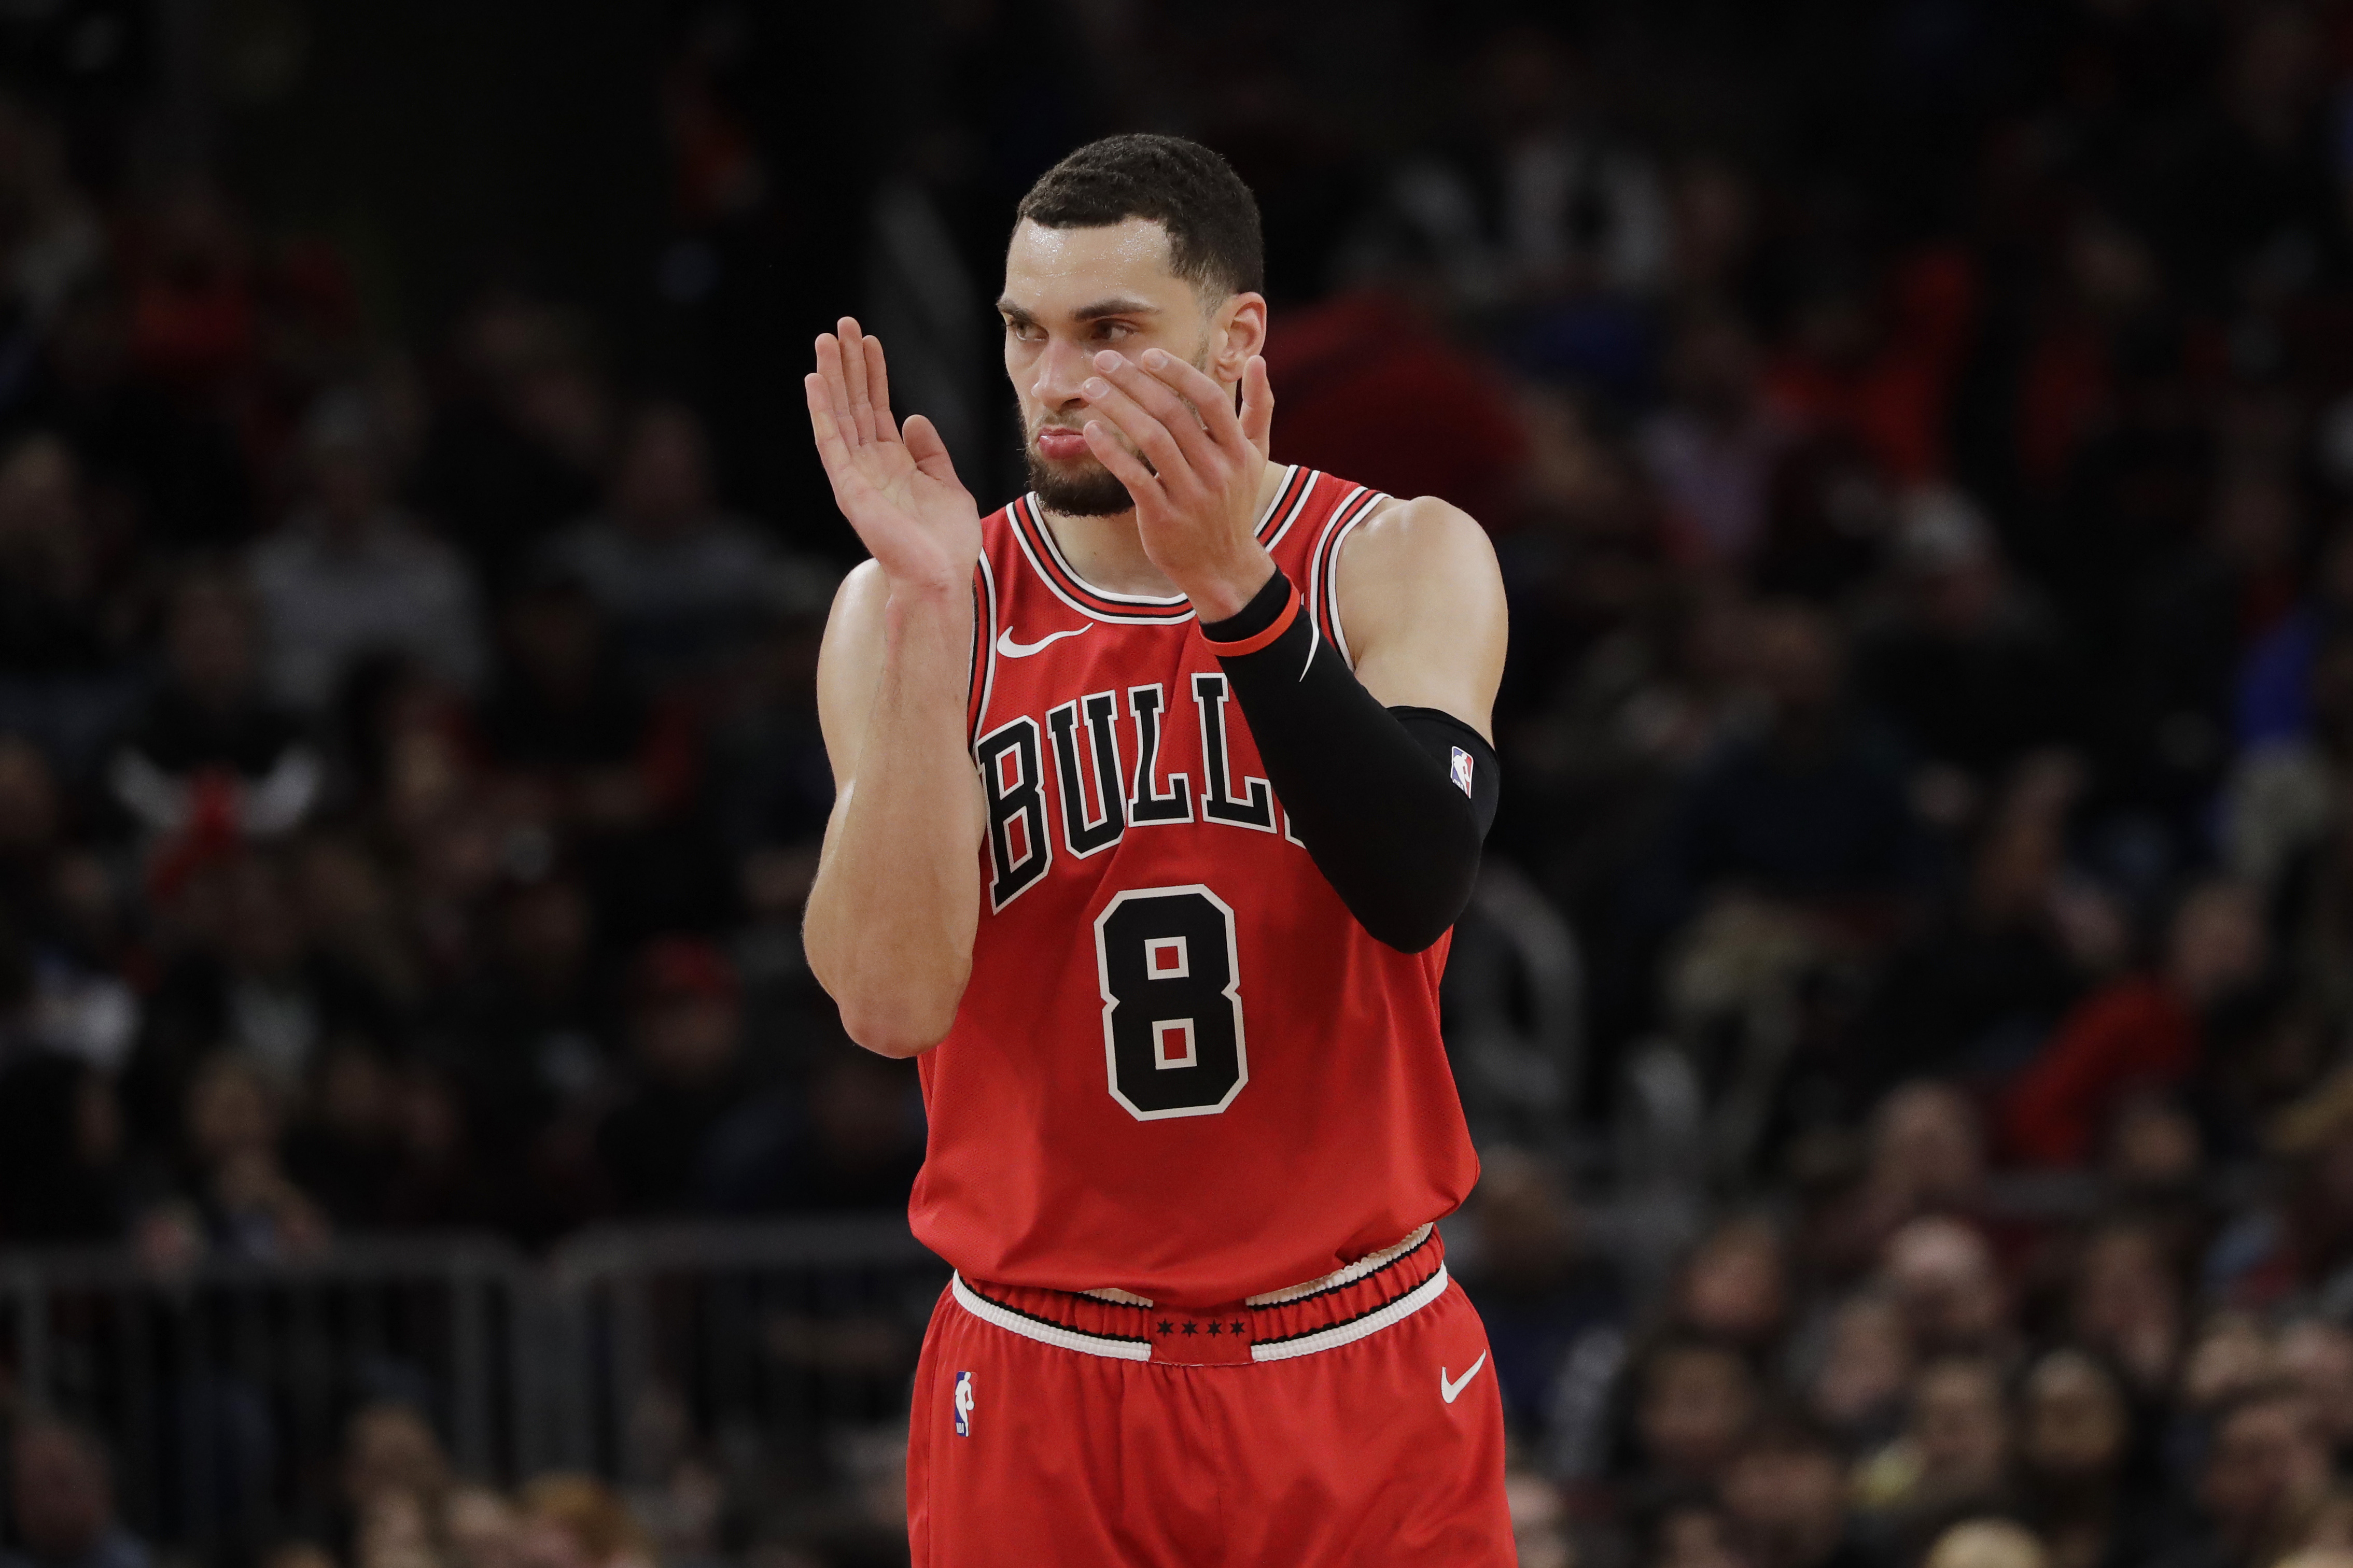 """""""Like I said, I'd rather be in the [All-Star Game] than be in the dunk contest,"""" the Bulls' Zach LaVine said. """"I think I've shown everything I can dunking."""""""